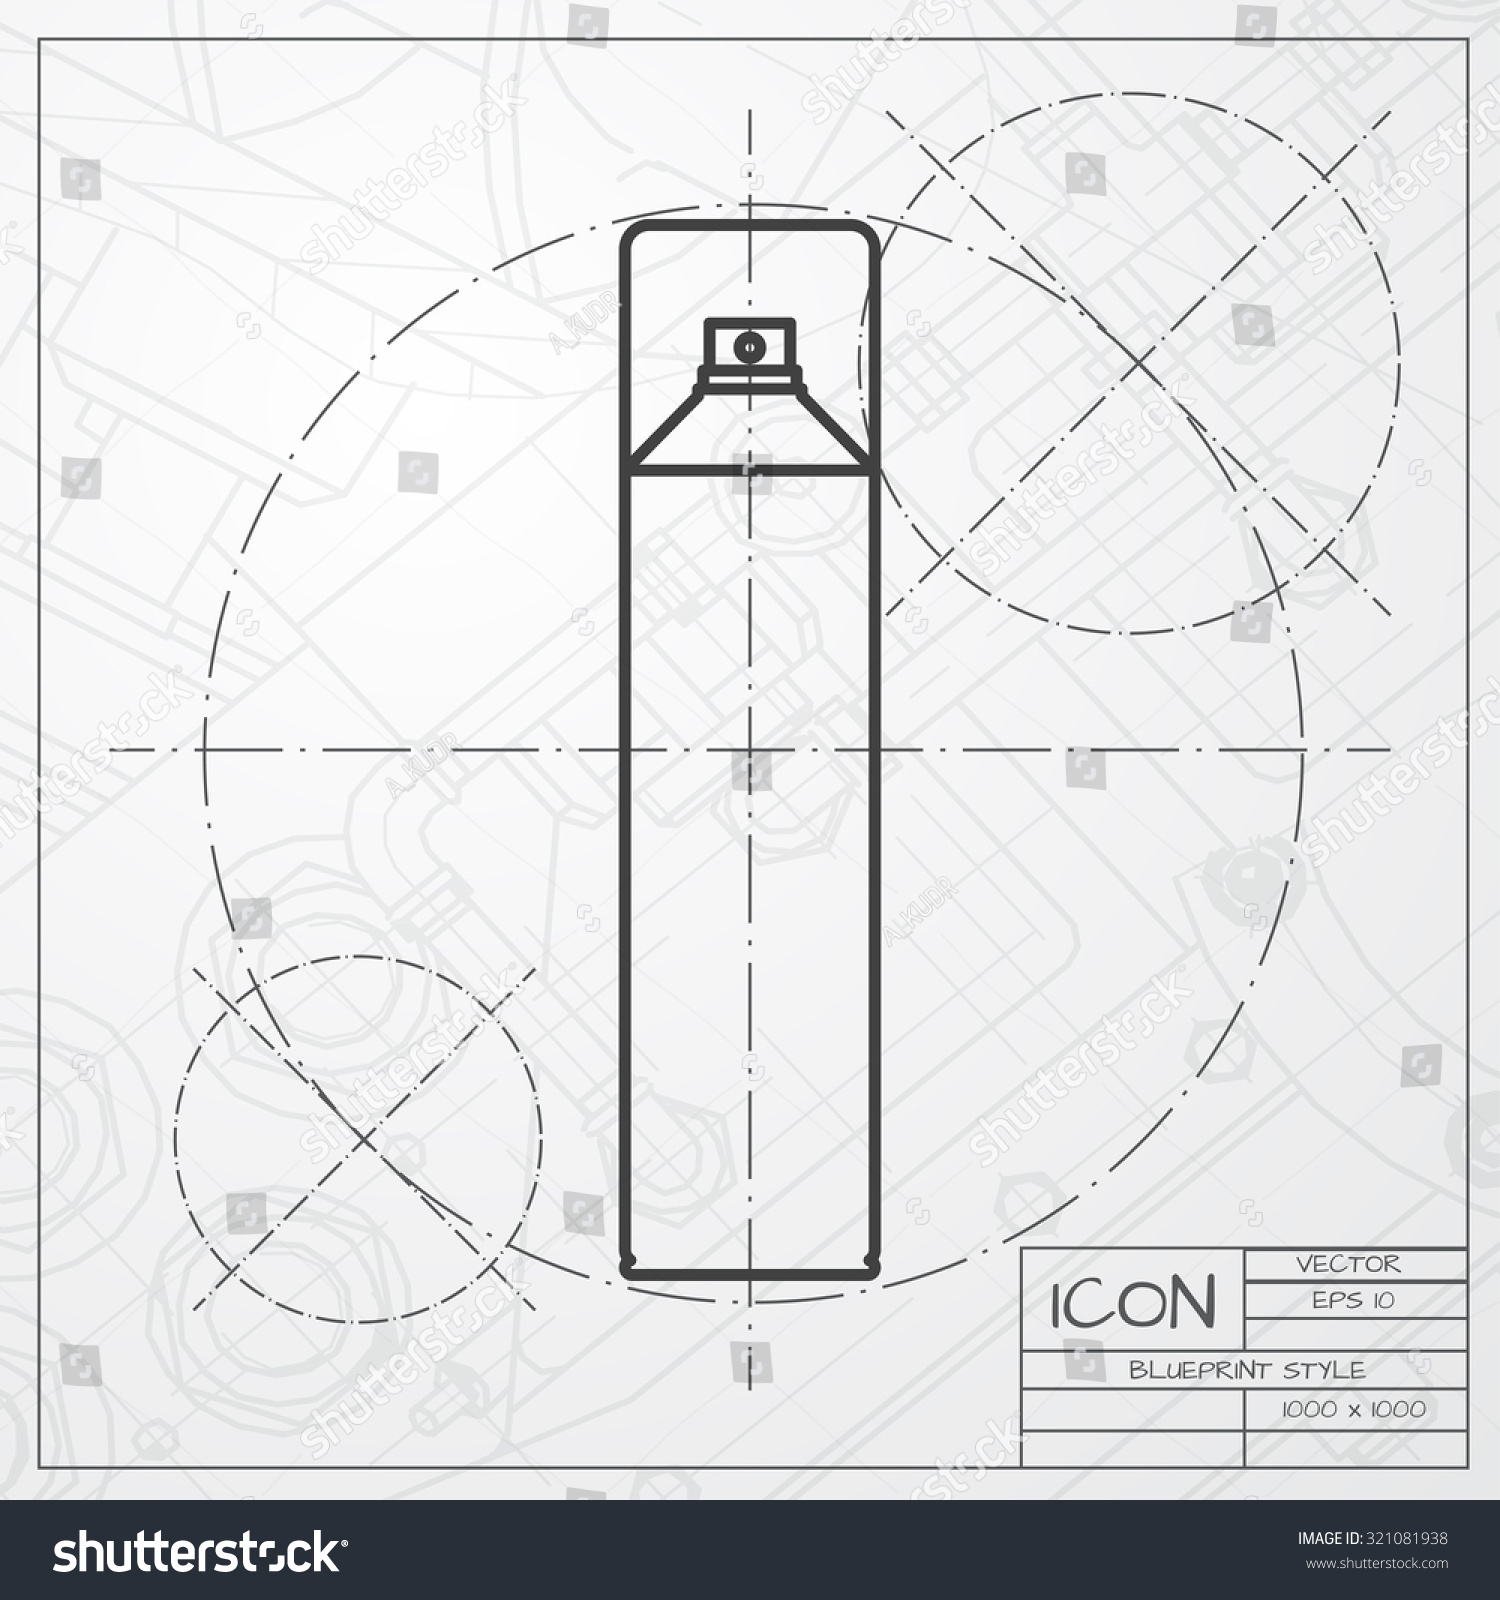 Vector classic blueprint air freshener aerosol stock vector vector classic blueprint of air freshener aerosol bottle on engineer and architect background malvernweather Gallery